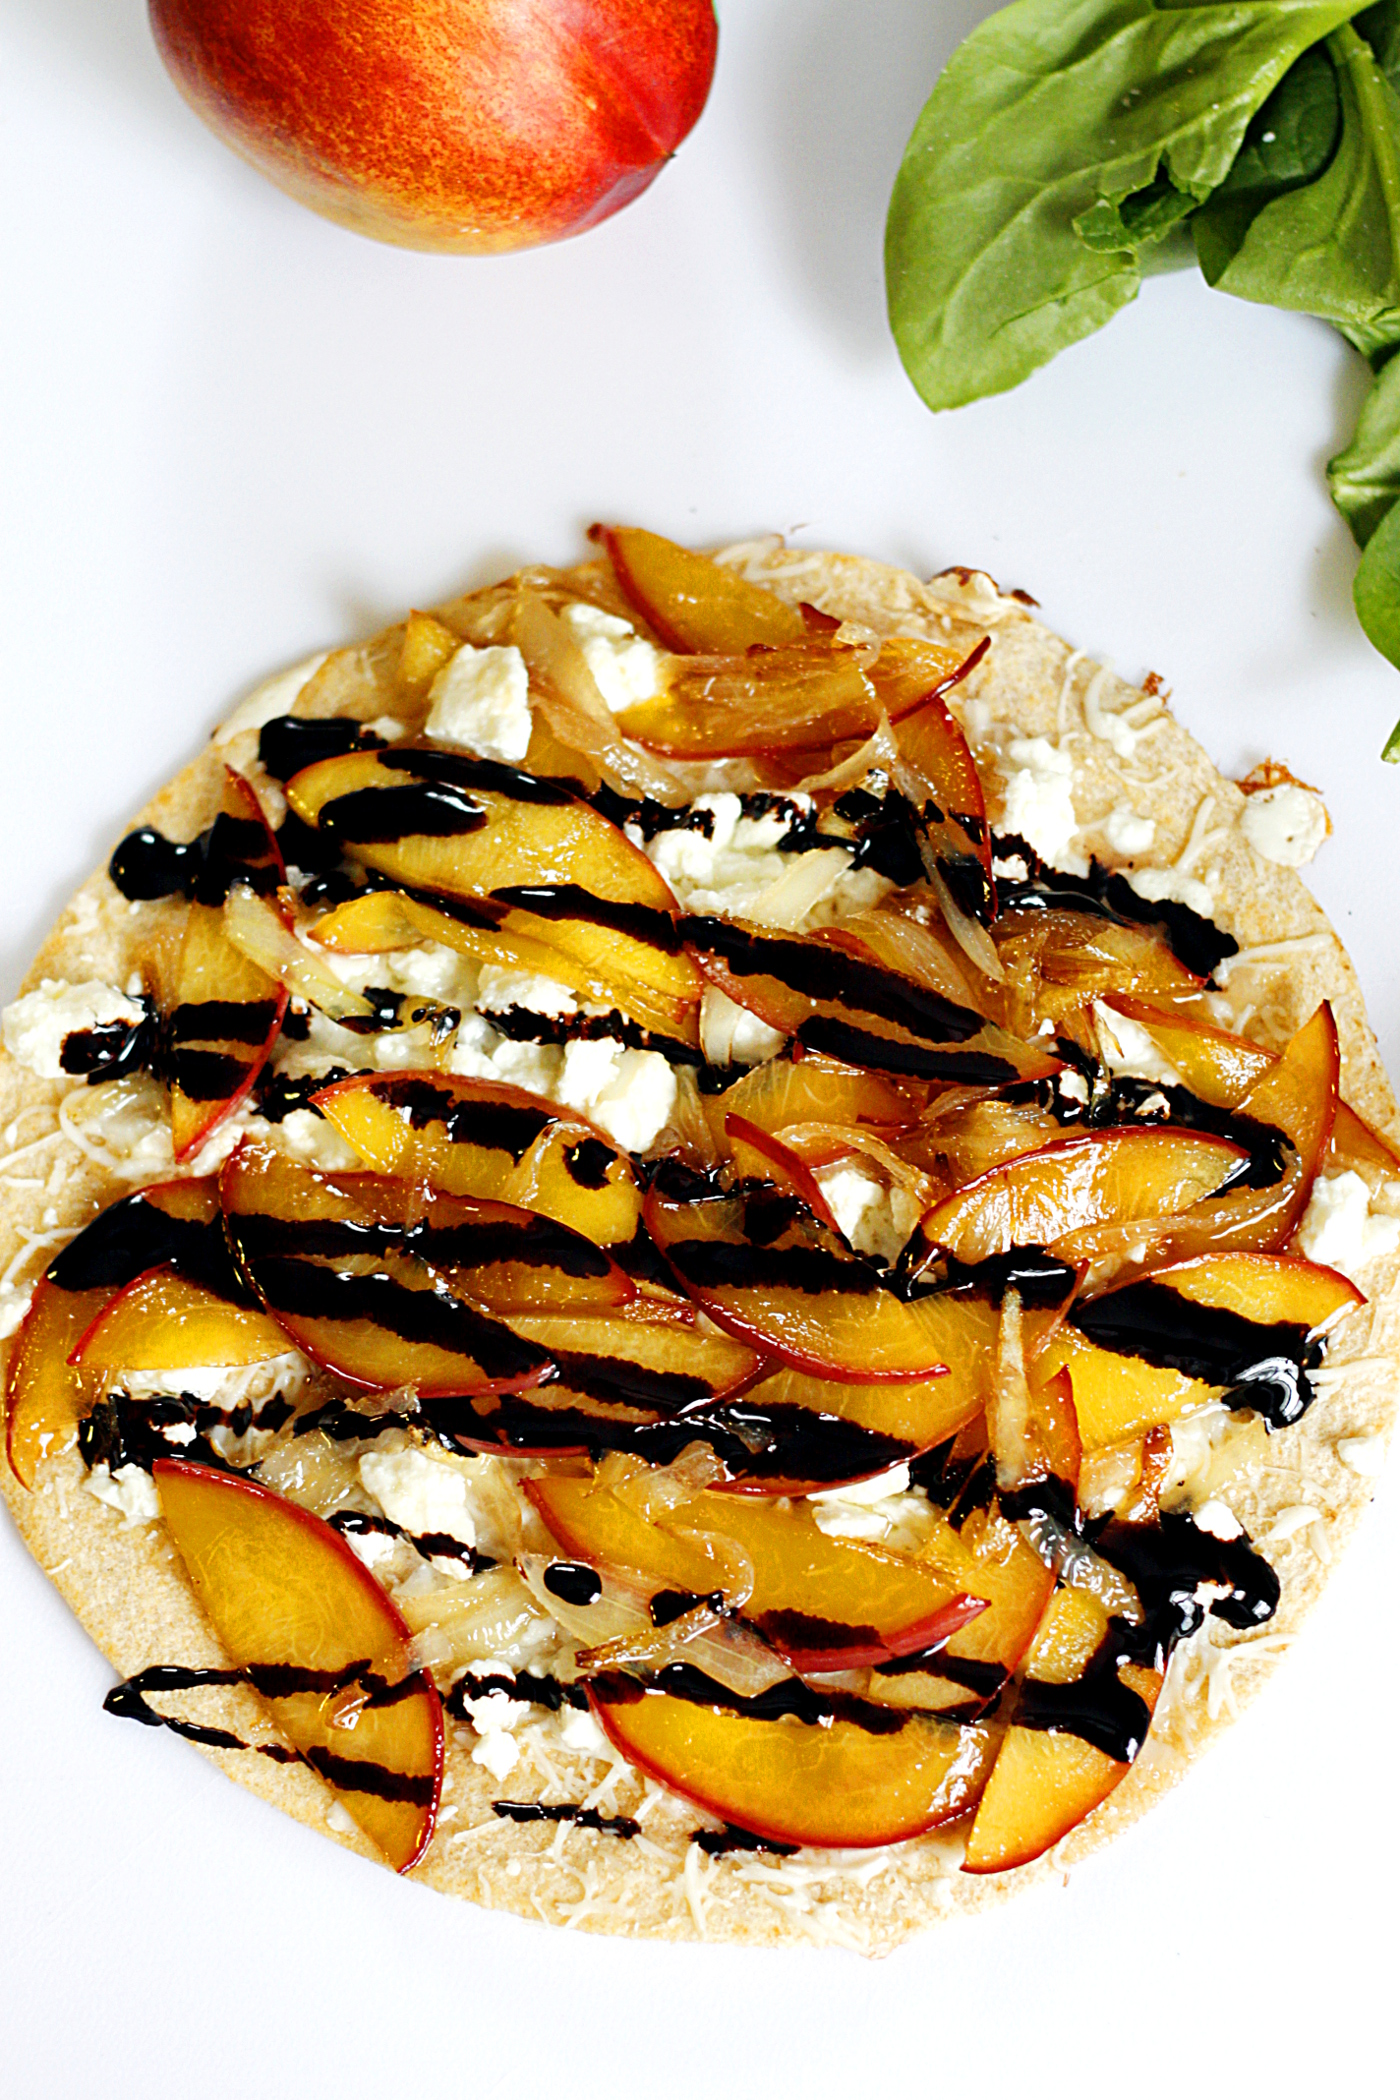 Caramelized Nectarine and Feta Quesadilla with a Balsamic Glaze